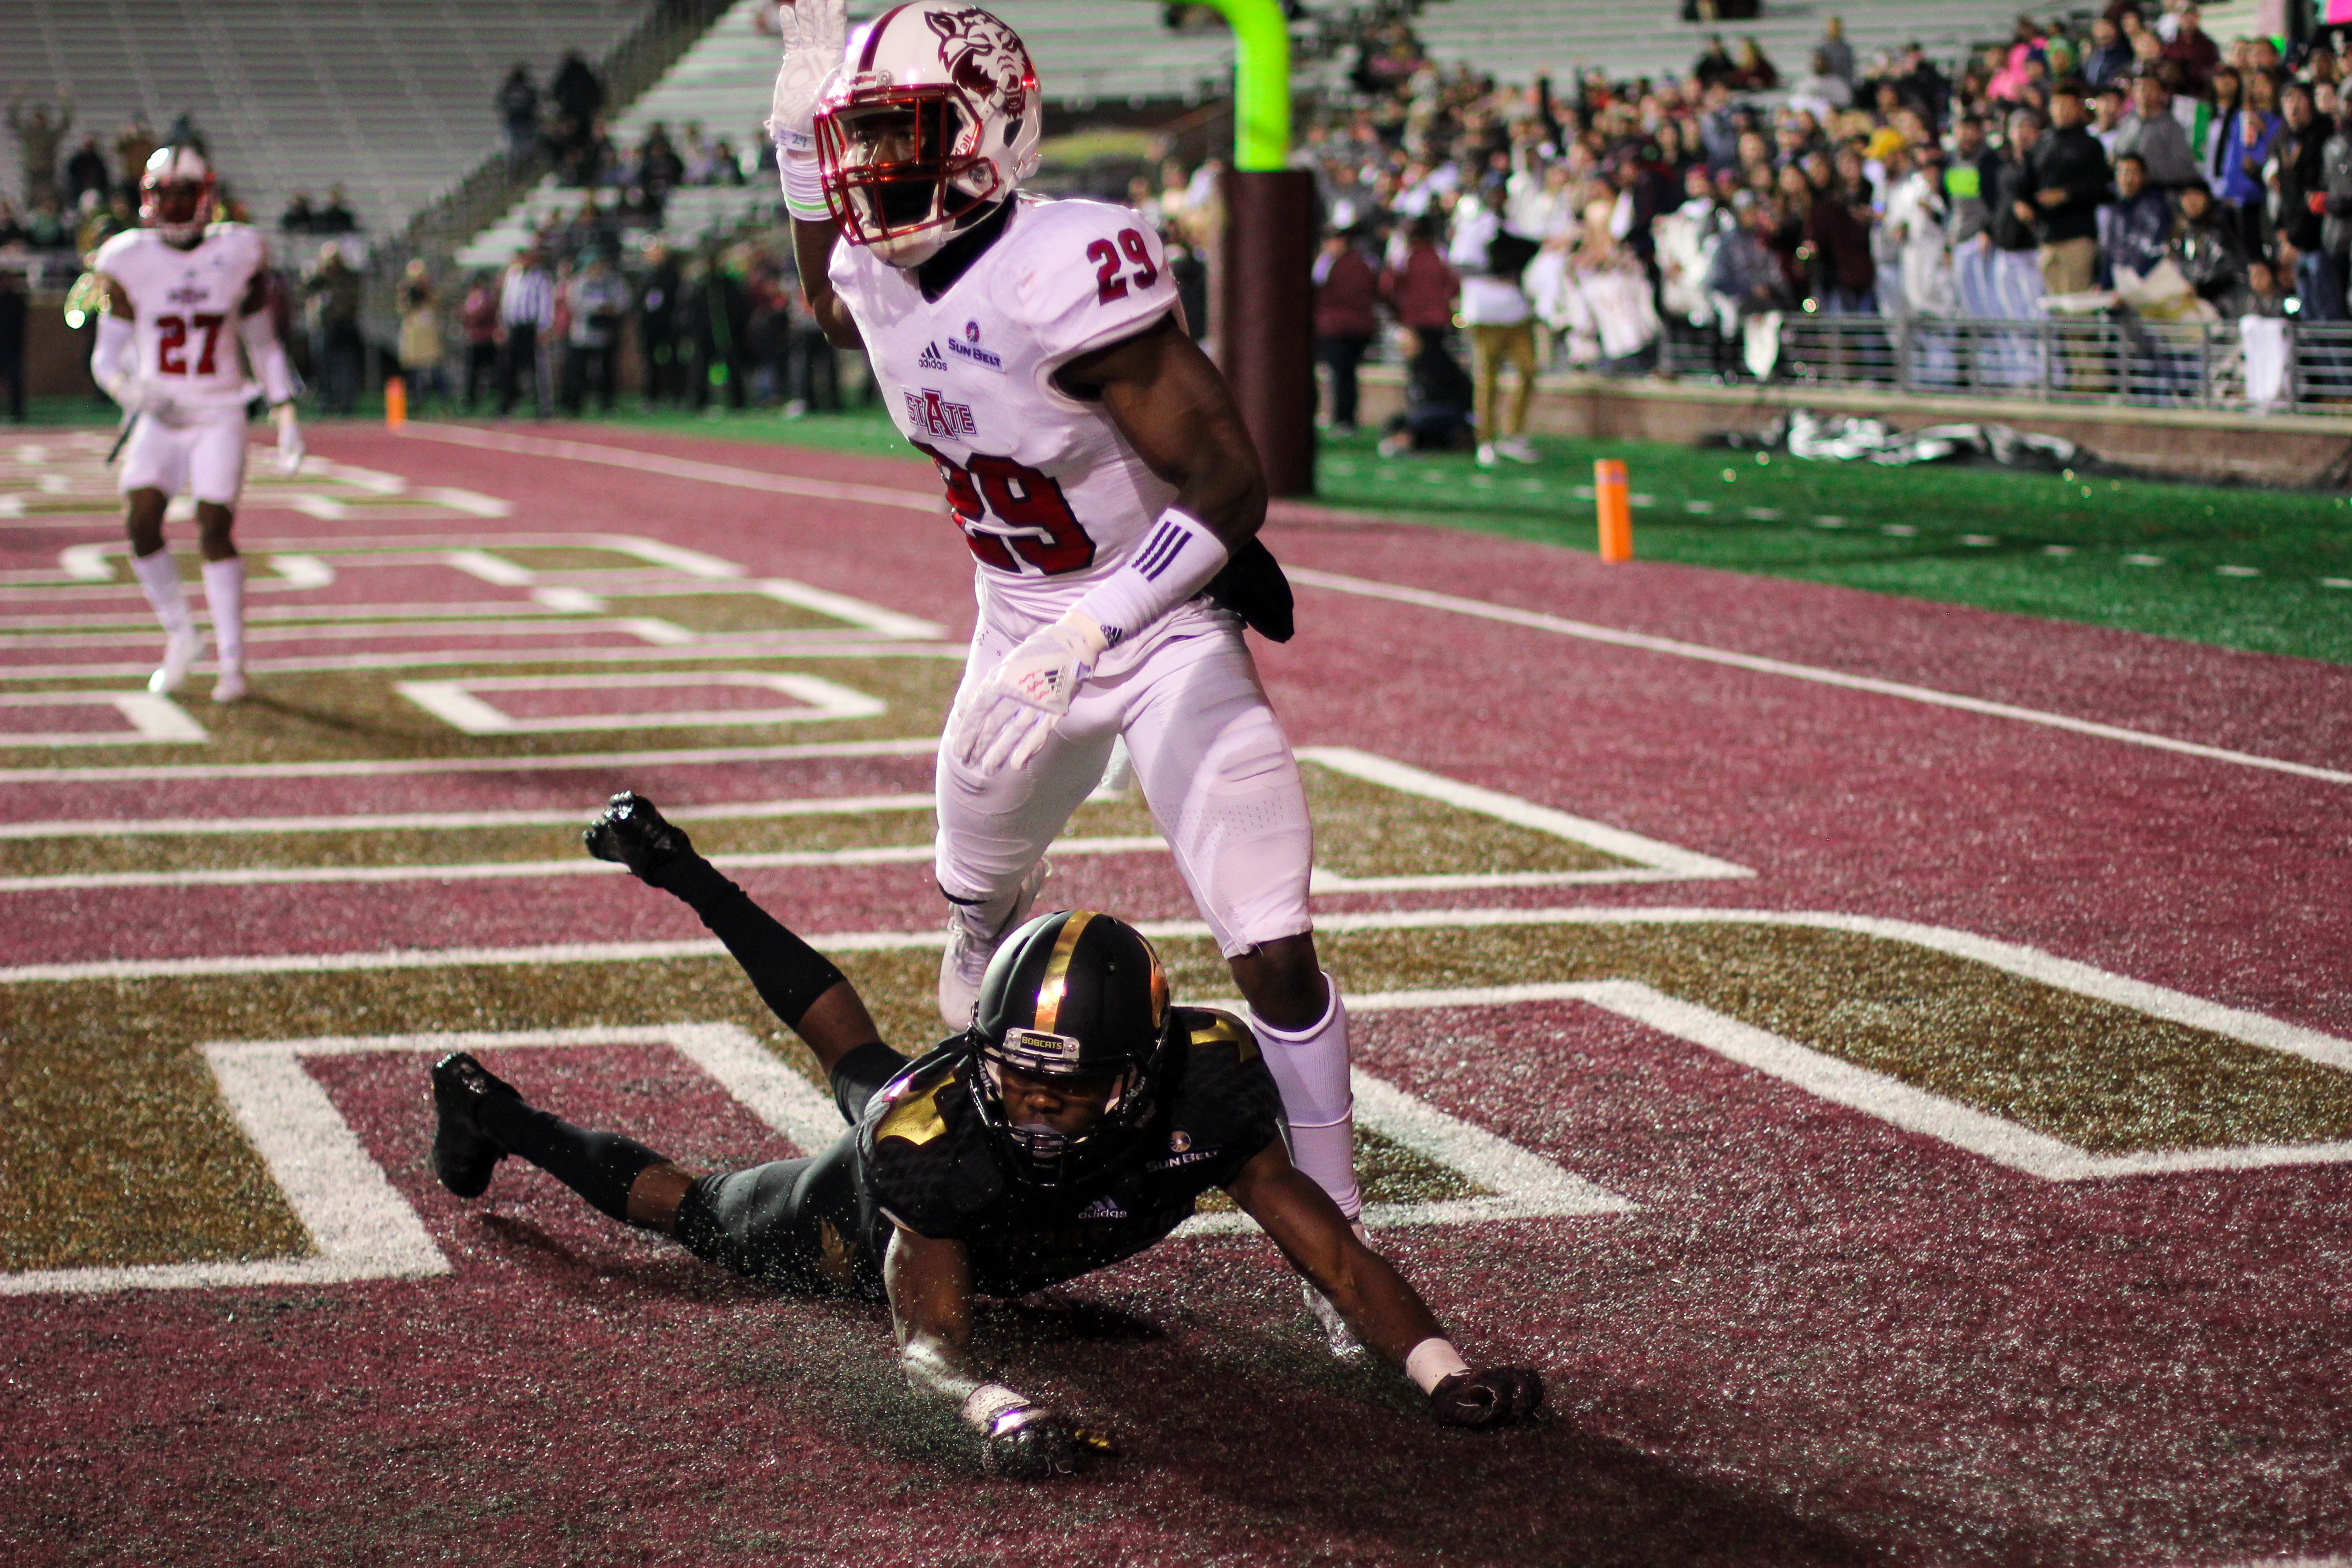 texas-state-player-tyring-to-get-open-in-the-endzone-credit_-maddison-tyson